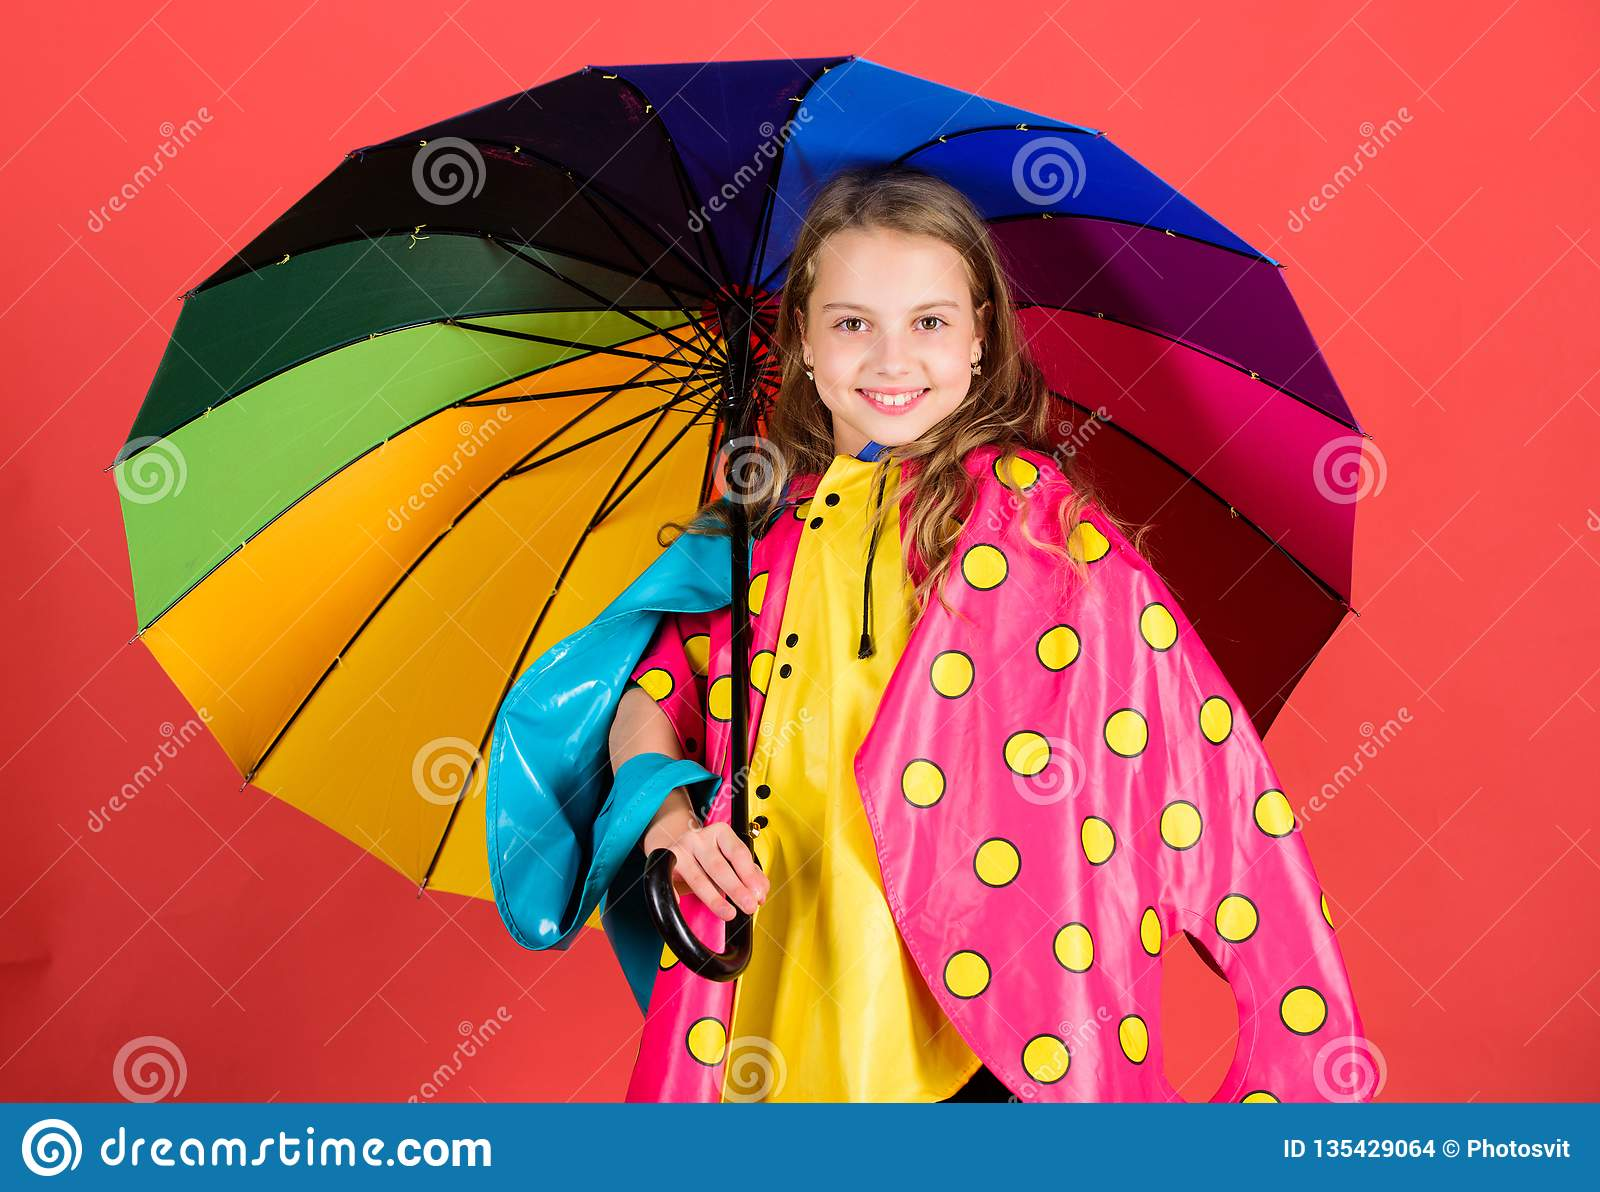 Kid girl happy hold colorful umbrella wear waterproof cloak. Enjoy rainy weather with proper garments. Waterproof